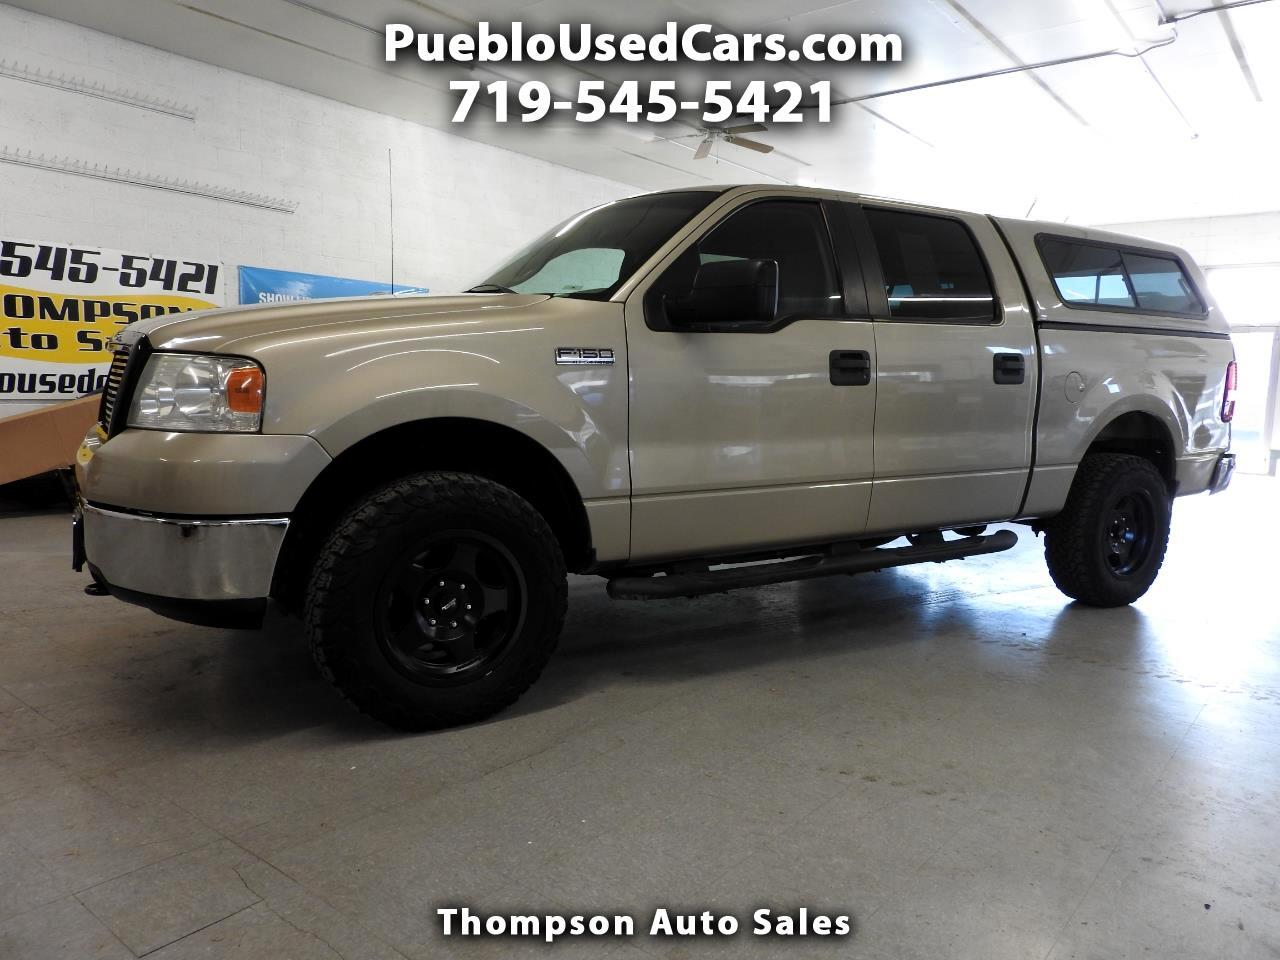 Cars For Sale In Pueblo >> Used 2008 Ford F 150 Xlt Supercrew 4wd For Sale In Pueblo Co